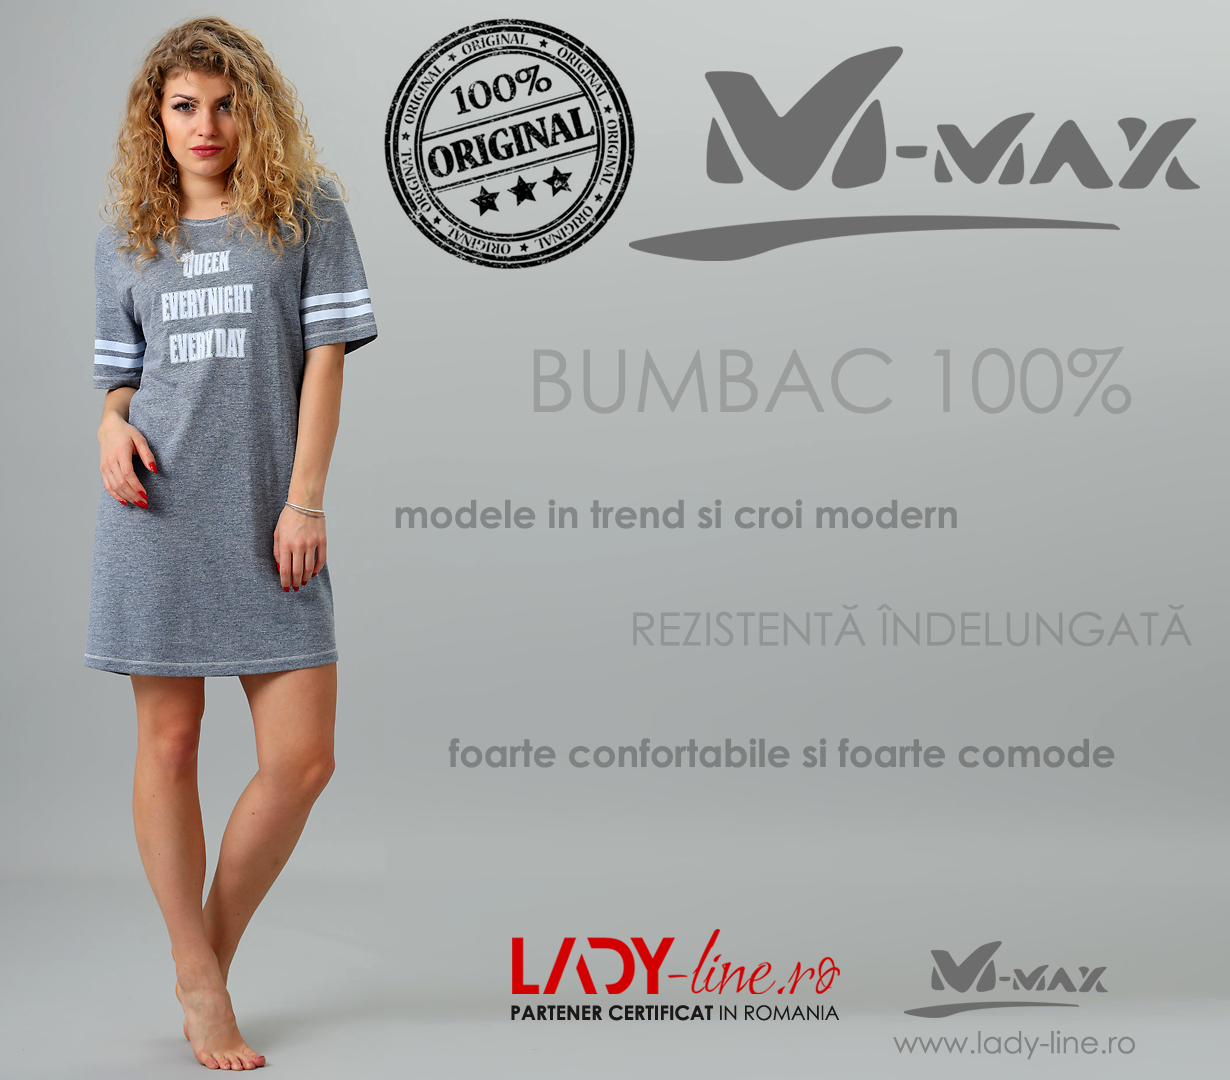 Camasa de Noapte M-Max, Bumbac 100%, 'Queen Everynight Everday' Gray